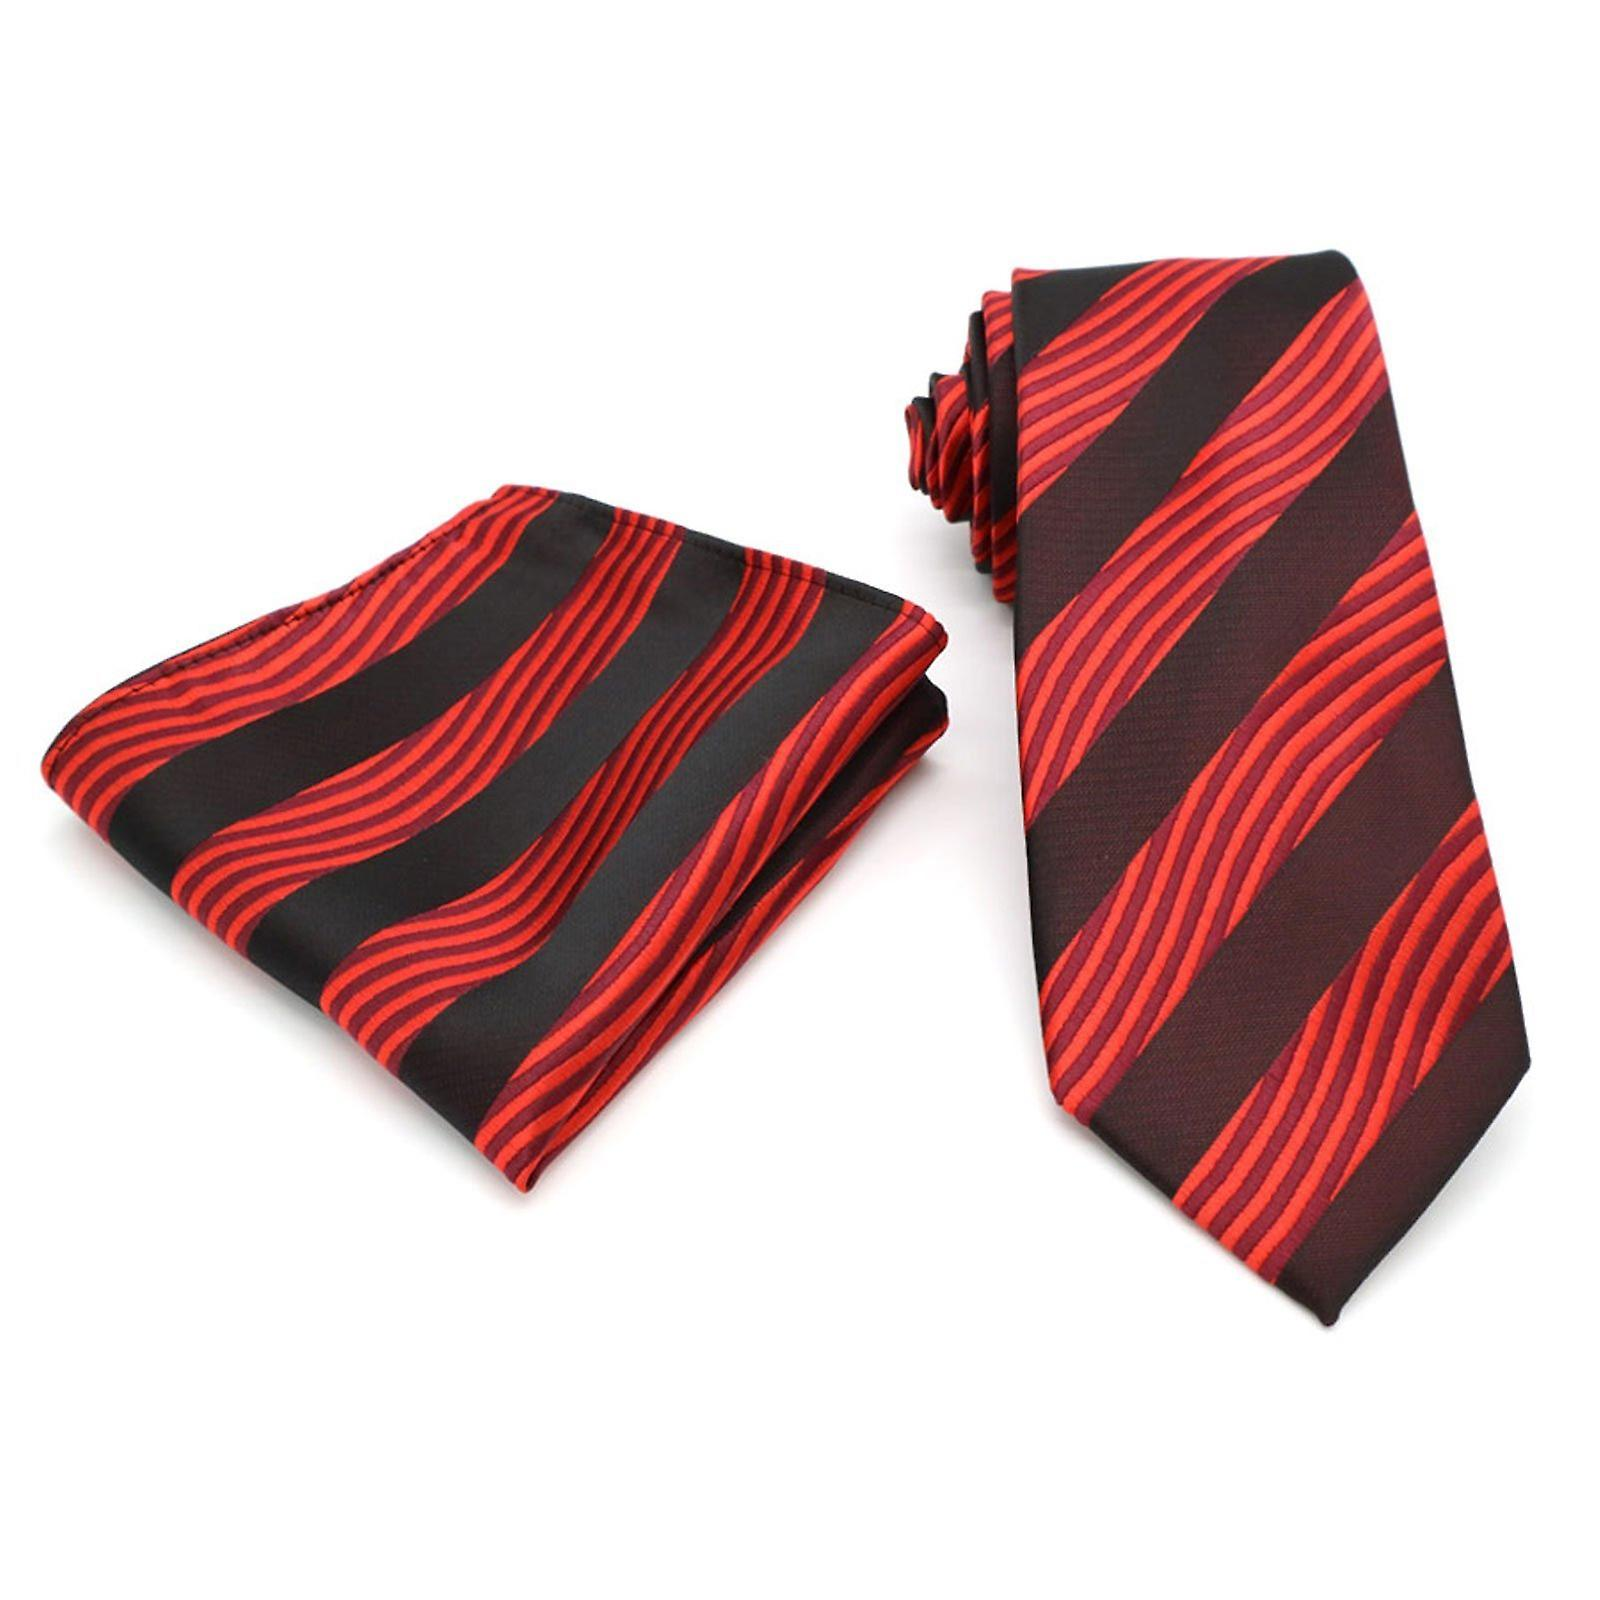 Red swirl stripe pattern designer tie & pocket square